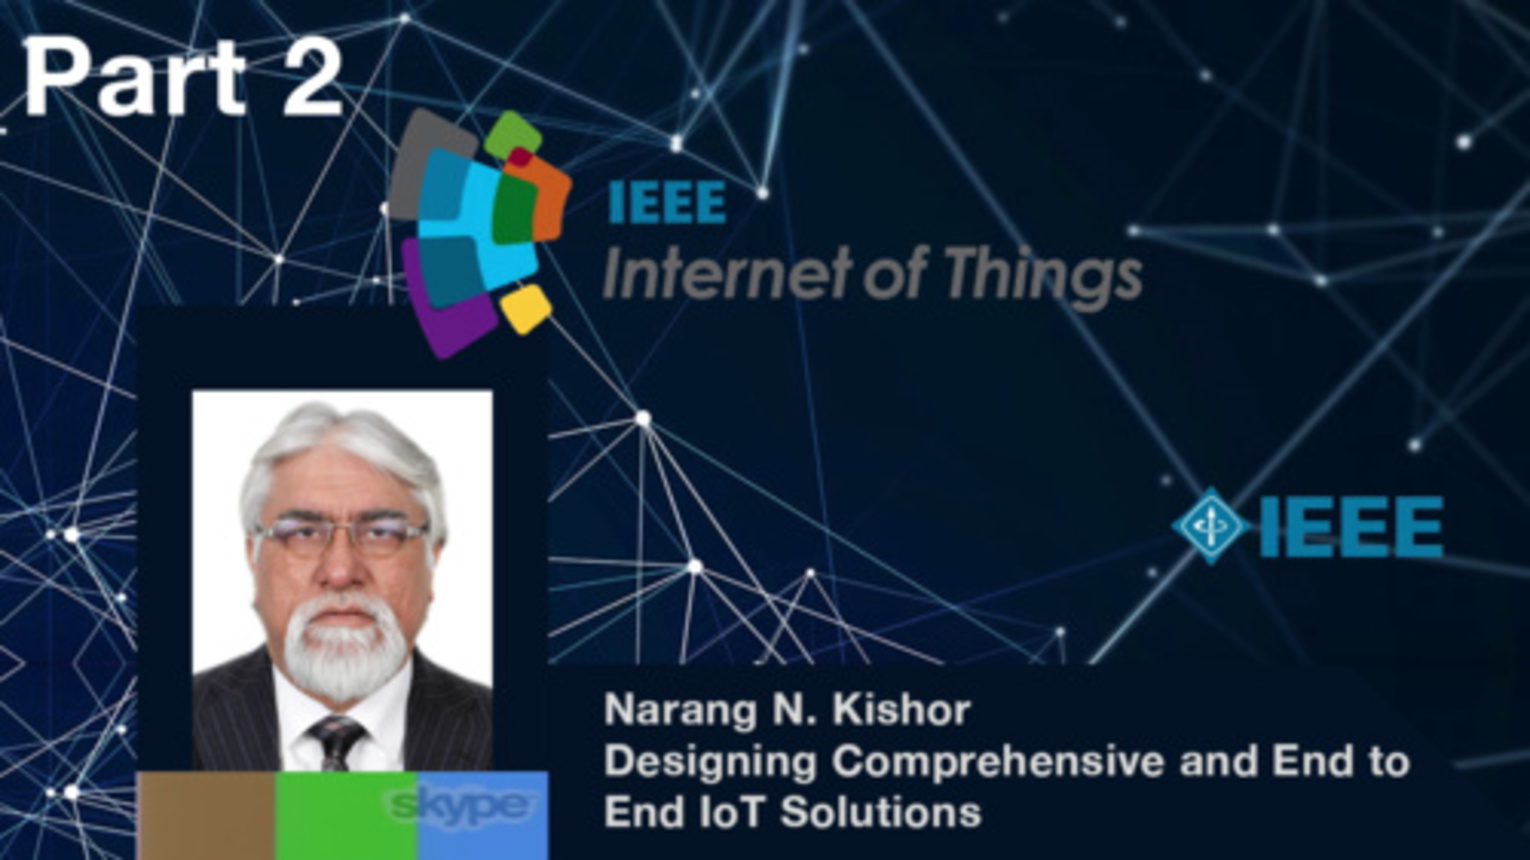 Part 2: Designing Comprehensive and End to End IoT Solutions; Challenges, Opportunities, and Approaches to Develop New IPs - Narang N. Kishor, IEEE WF-IoT 2015